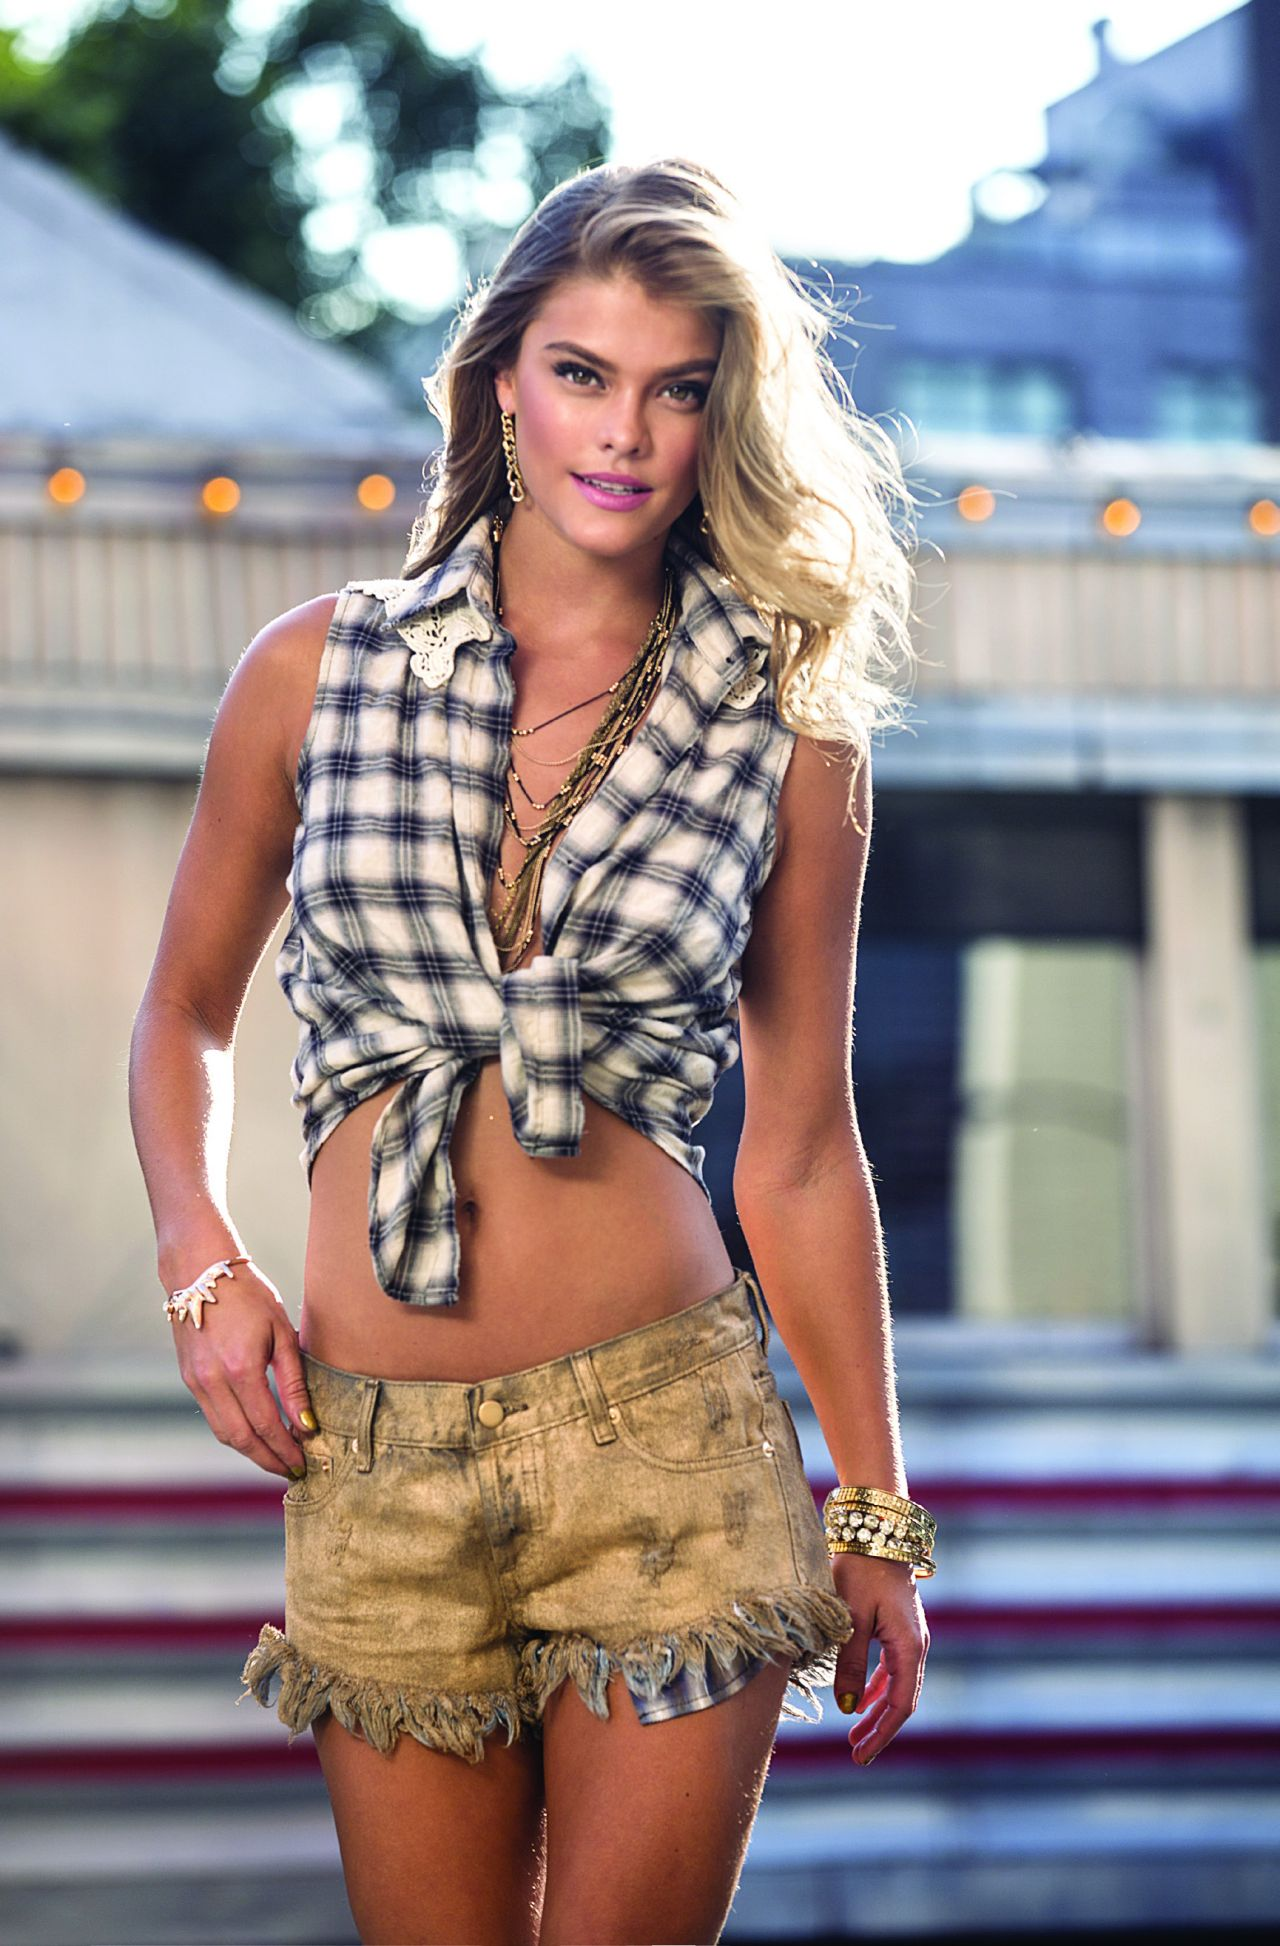 Nina Agdal - Sunaj : Lookbook - Spring - Summer 2015